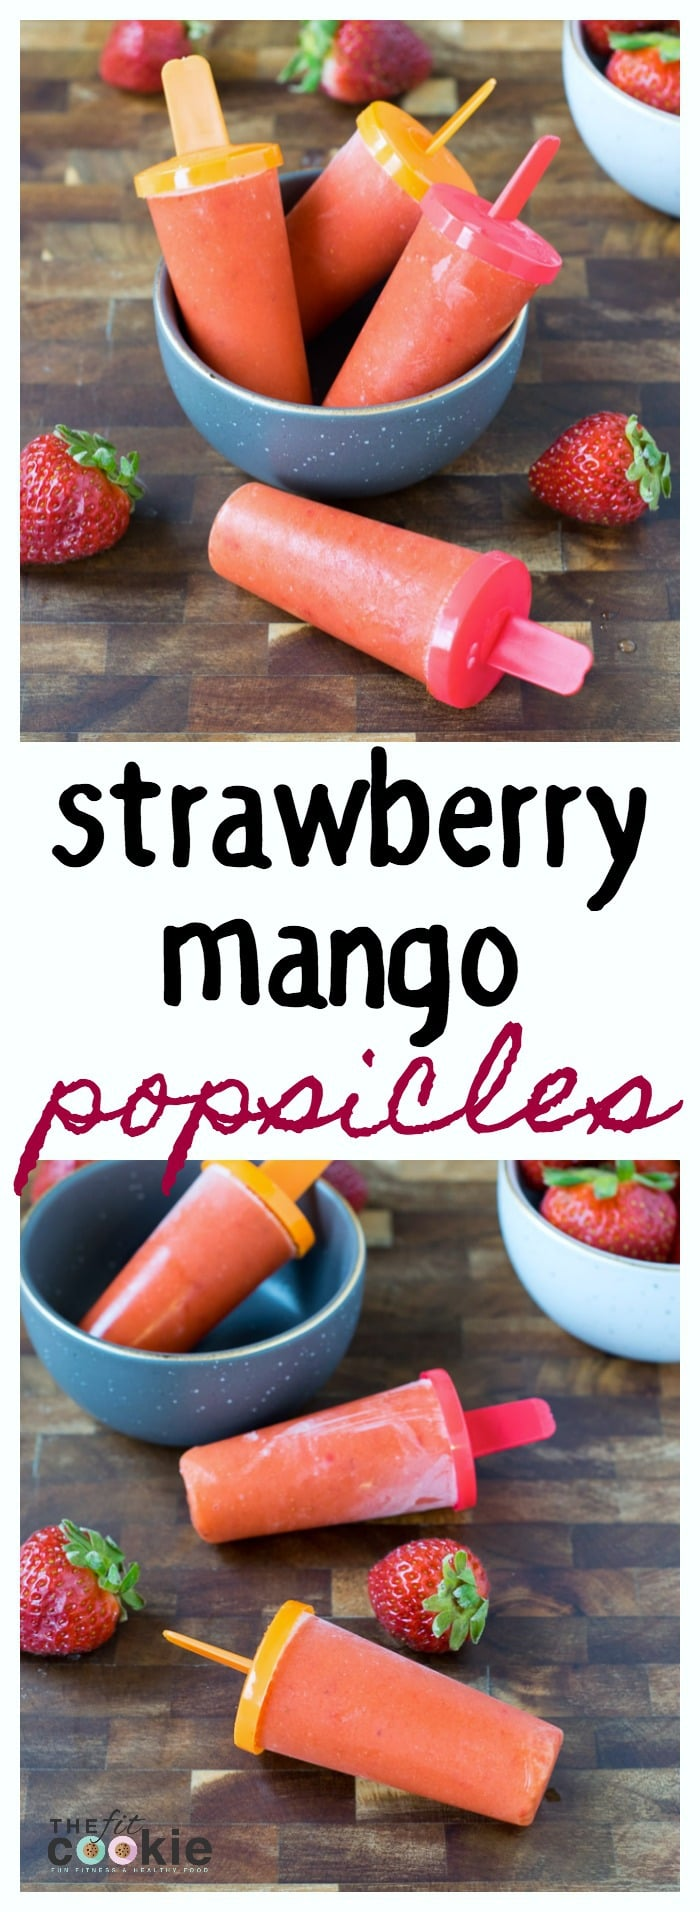 If you're looking for some healthy cool treats for summer, make these Strawberry Mango Popsicles - they only have 3 ingredients! Plus they are paleo and vegan, too - TheFitCookie.com